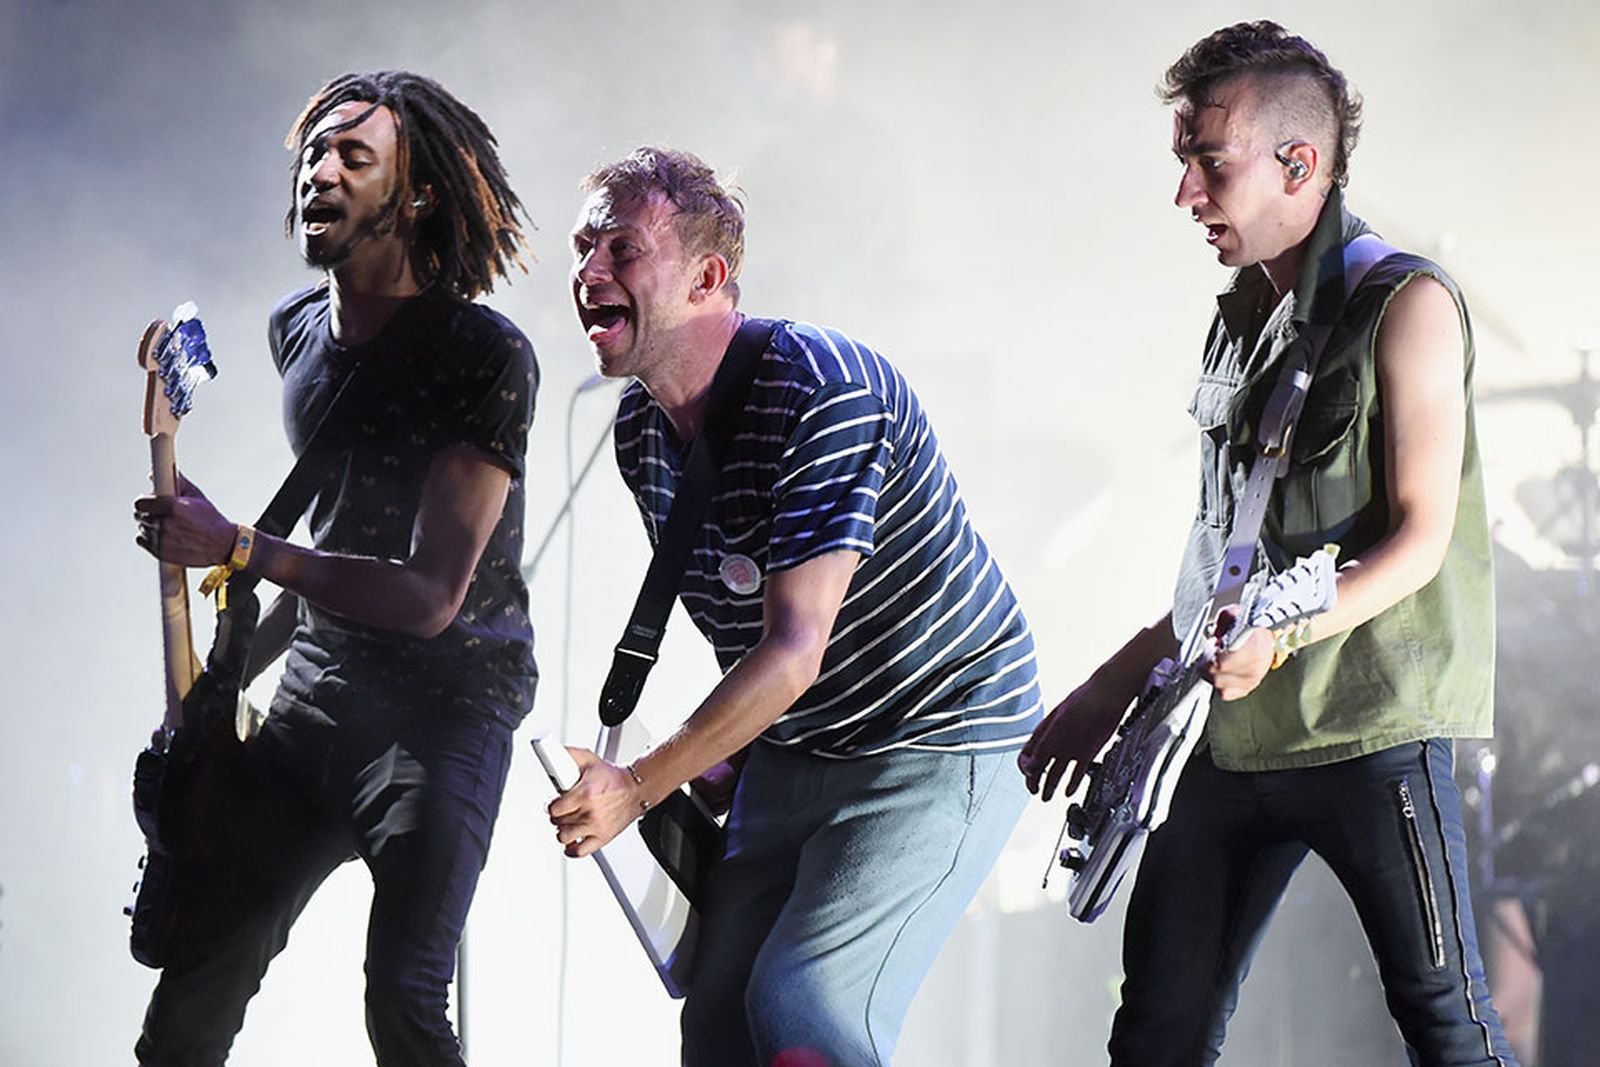 gorillaz-the-now-now-release-date-details-01